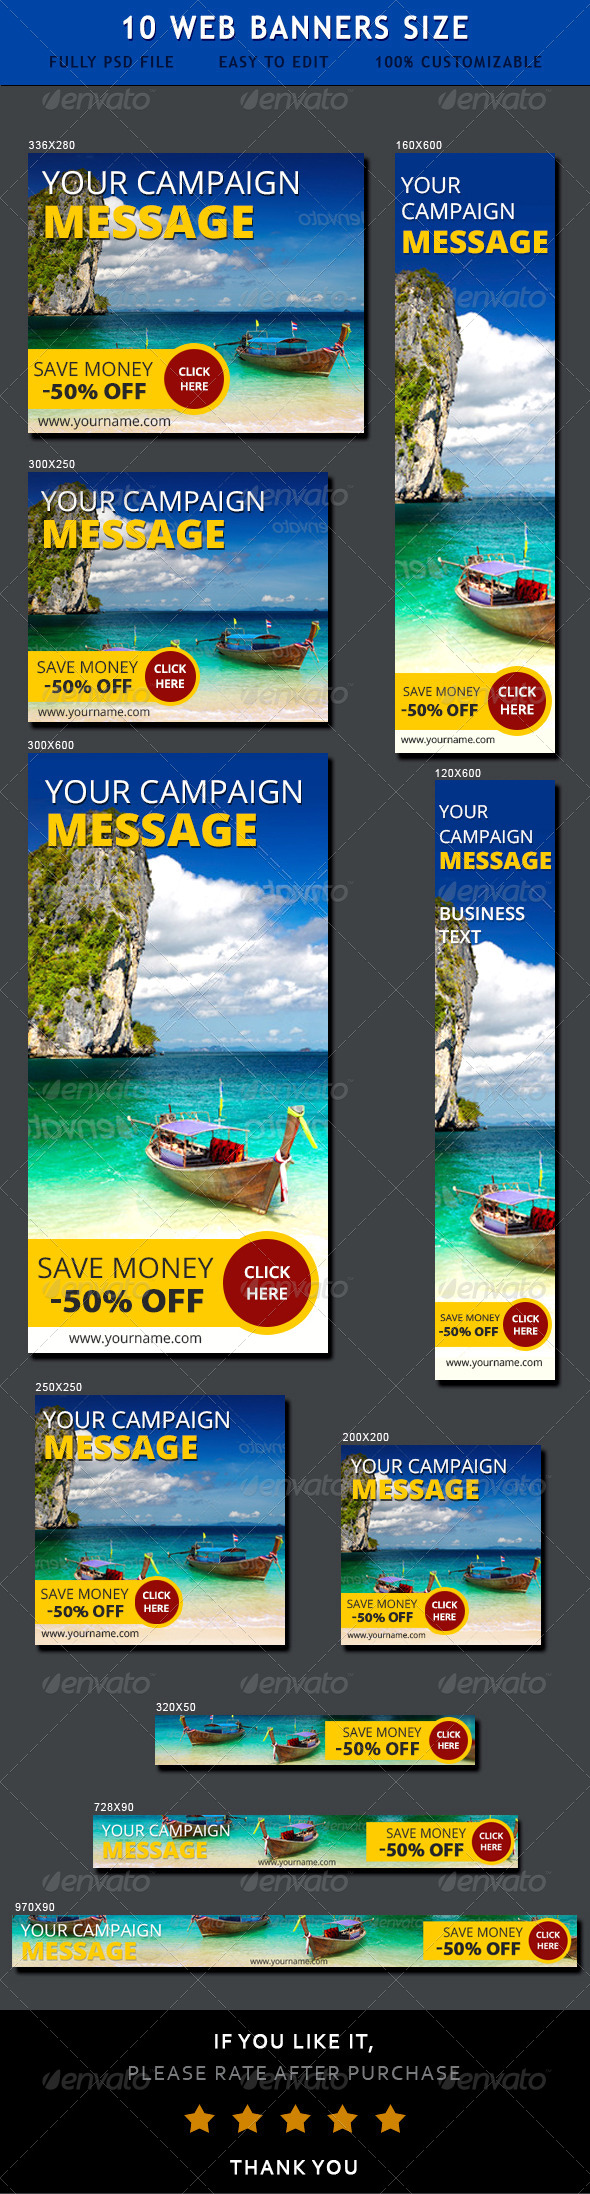 Travel Web Ad Banners - Banners & Ads Web Elements